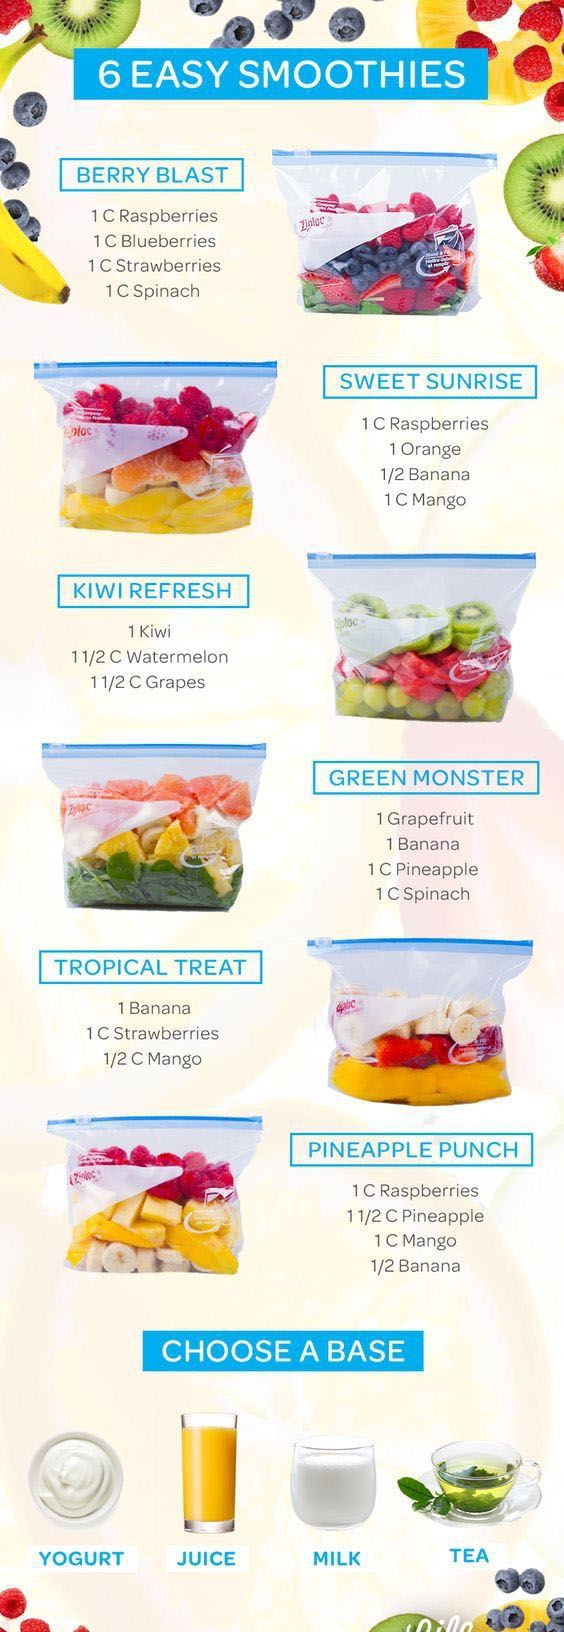 4 South Beach Diet Smoothies Recipes